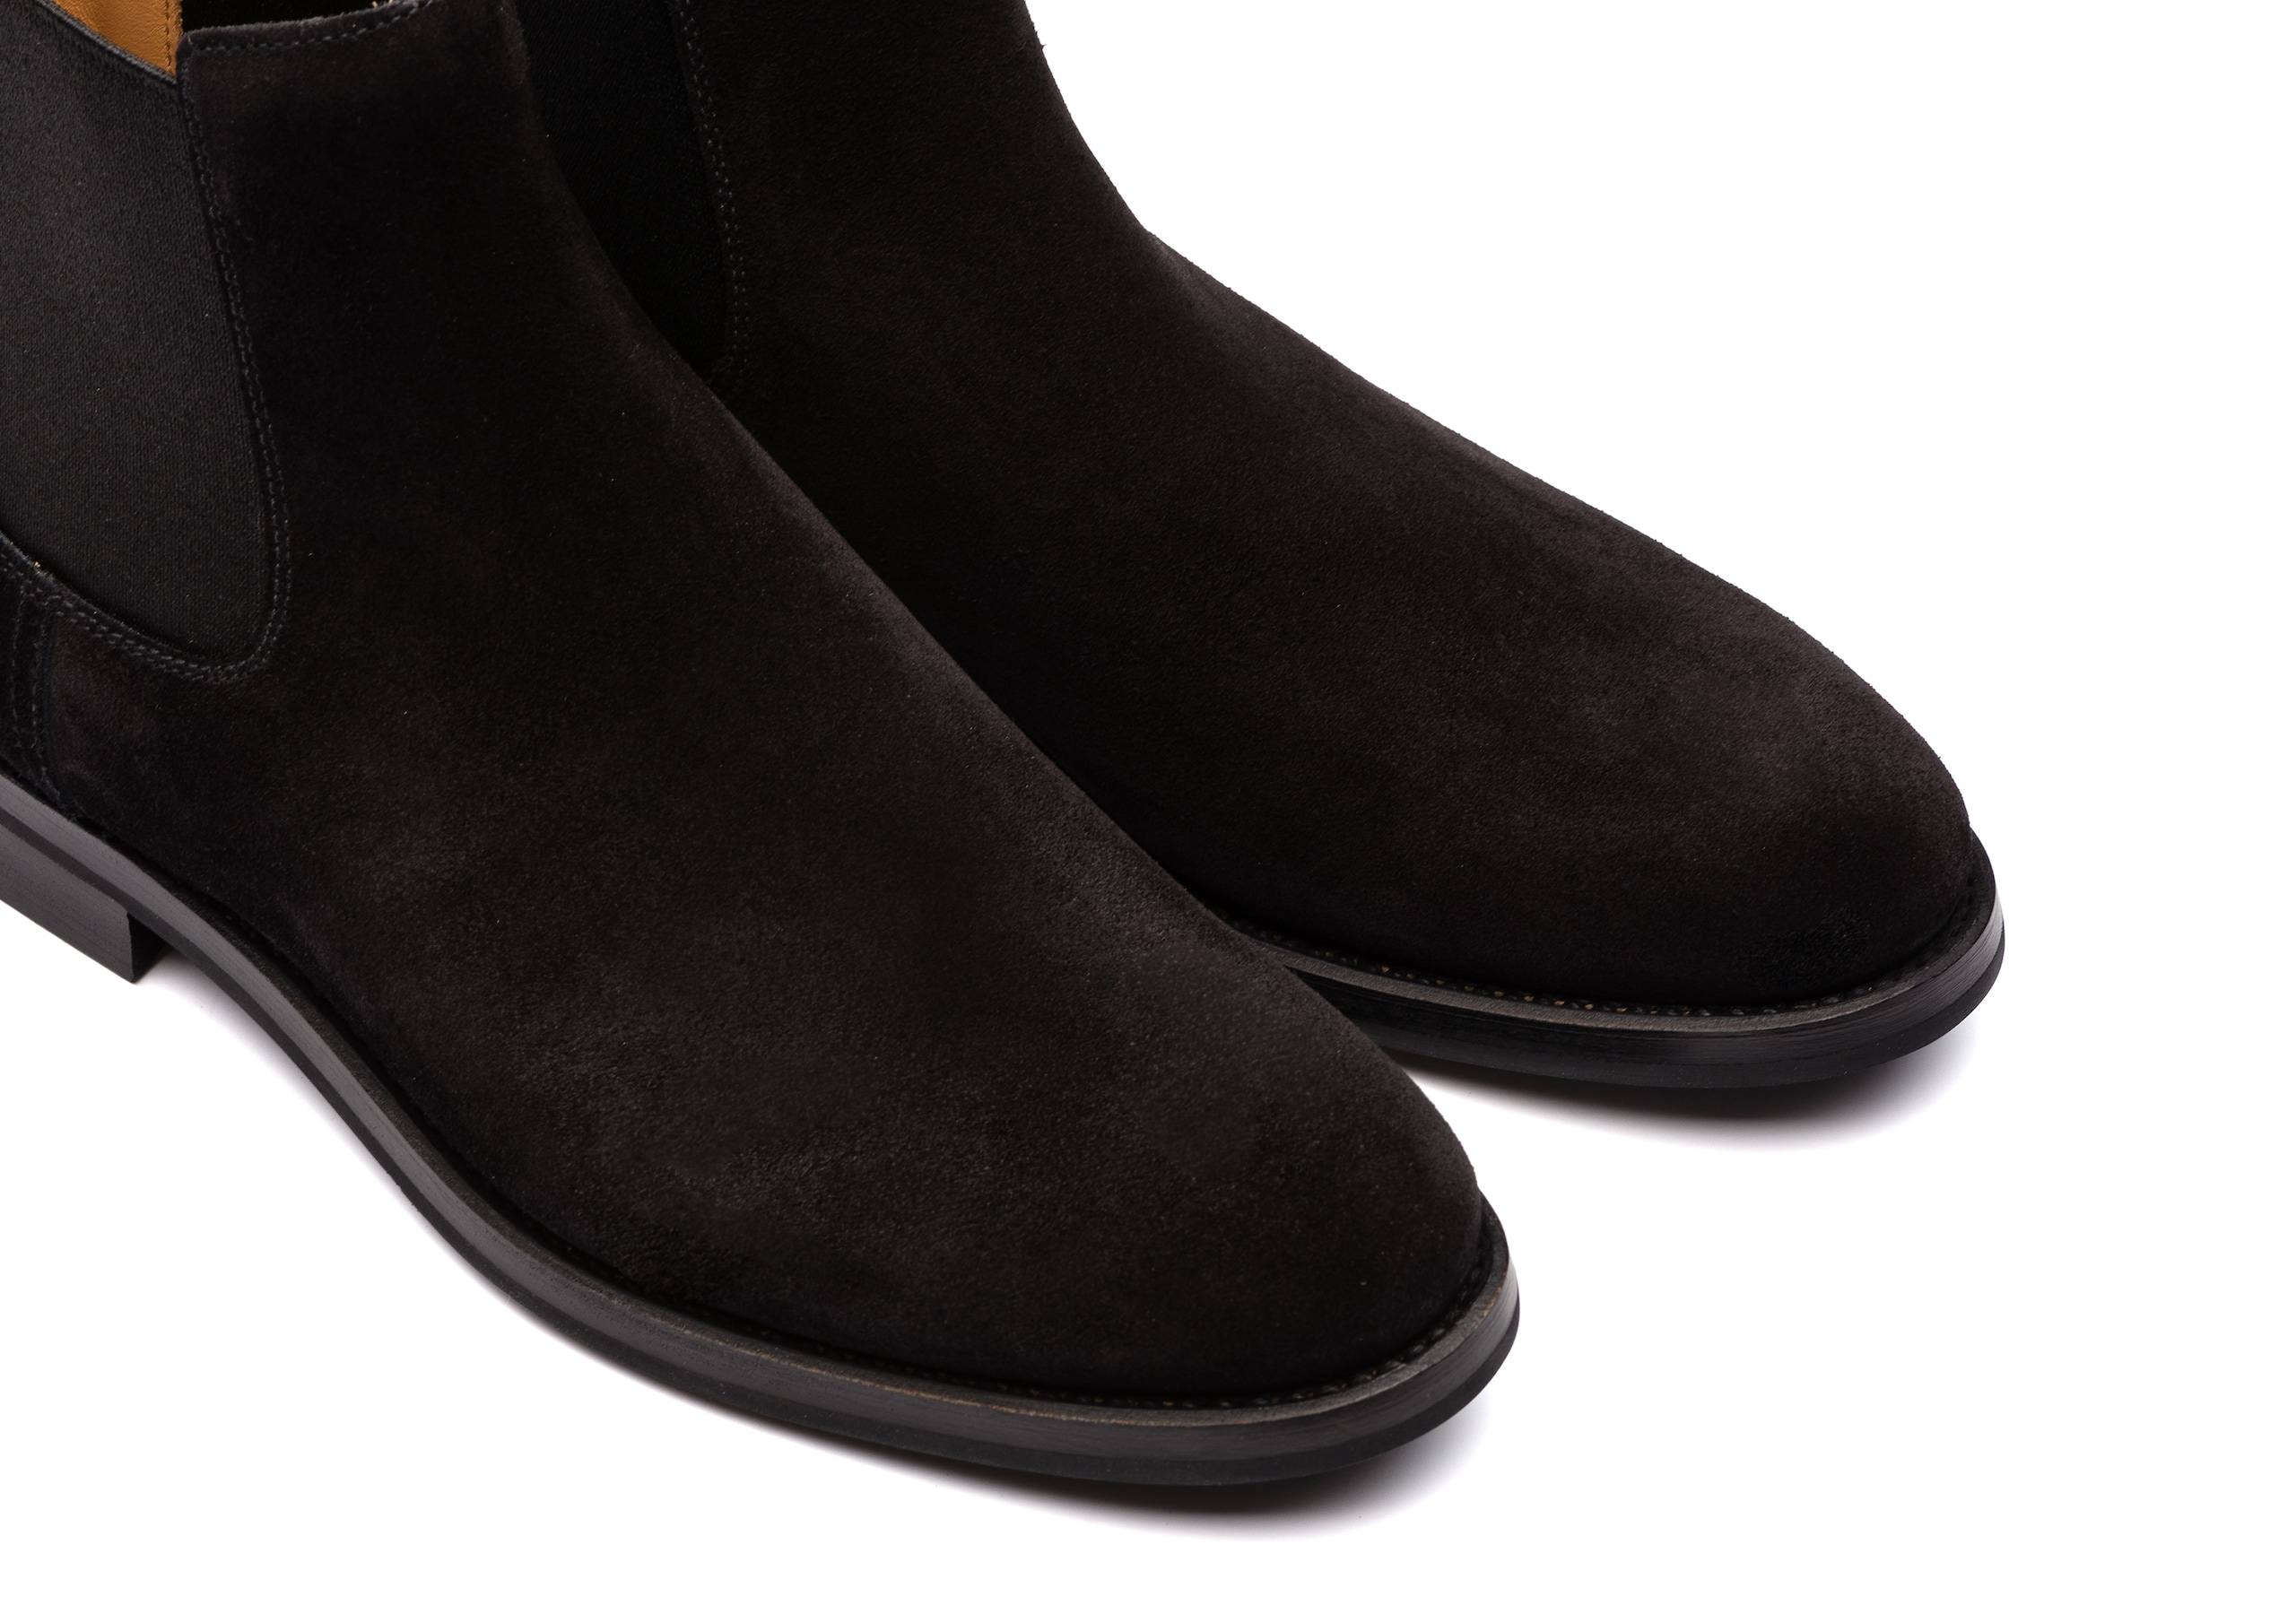 Monmouth wg Church's Suede Chelsea Boot Black